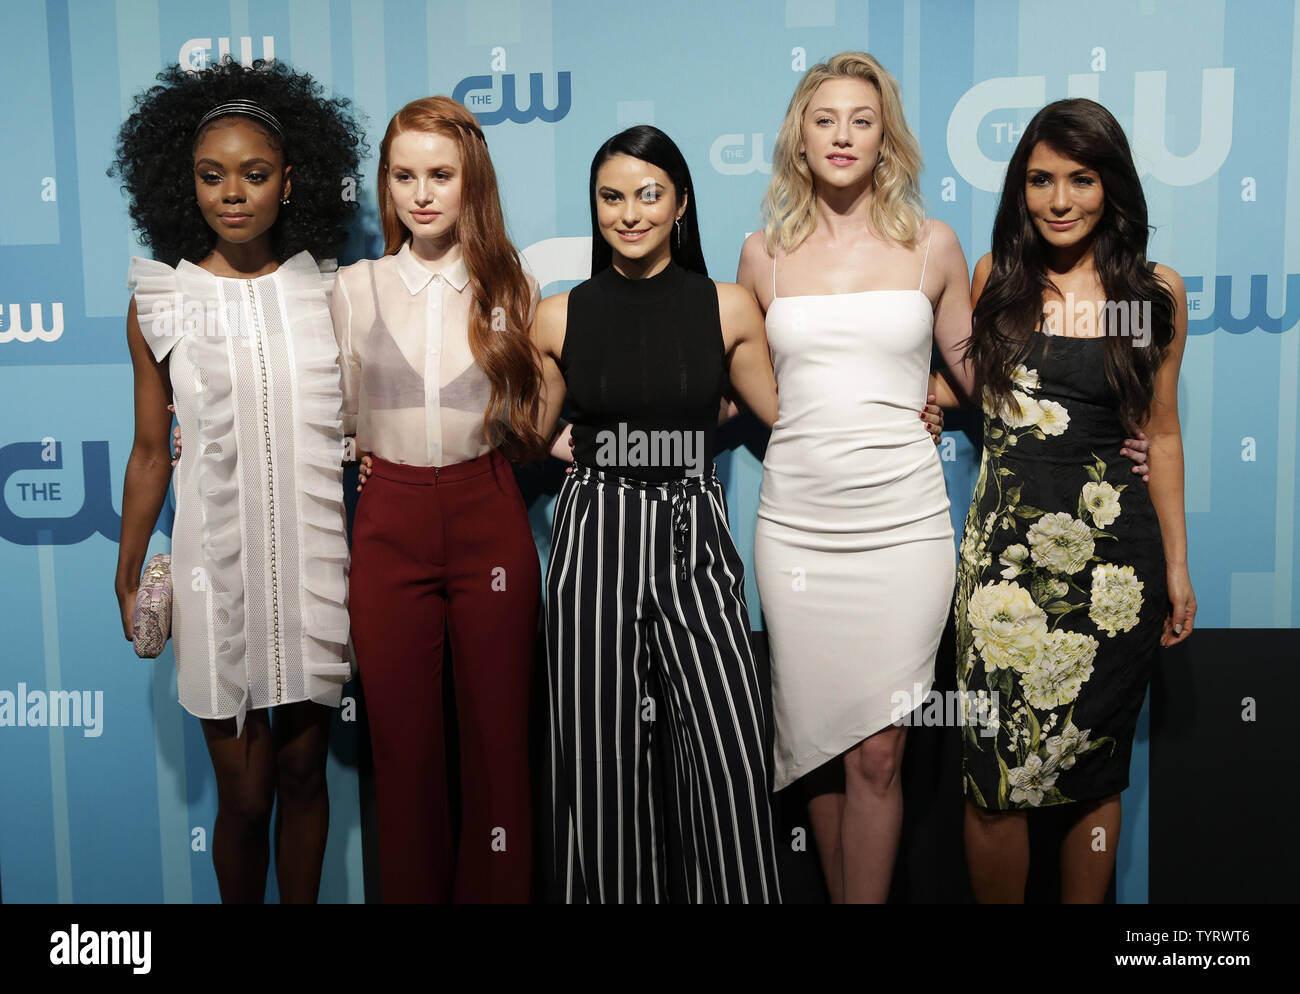 Camila Mendes Stock Photos Camila Mendes Stock Images Page 2 Alamy